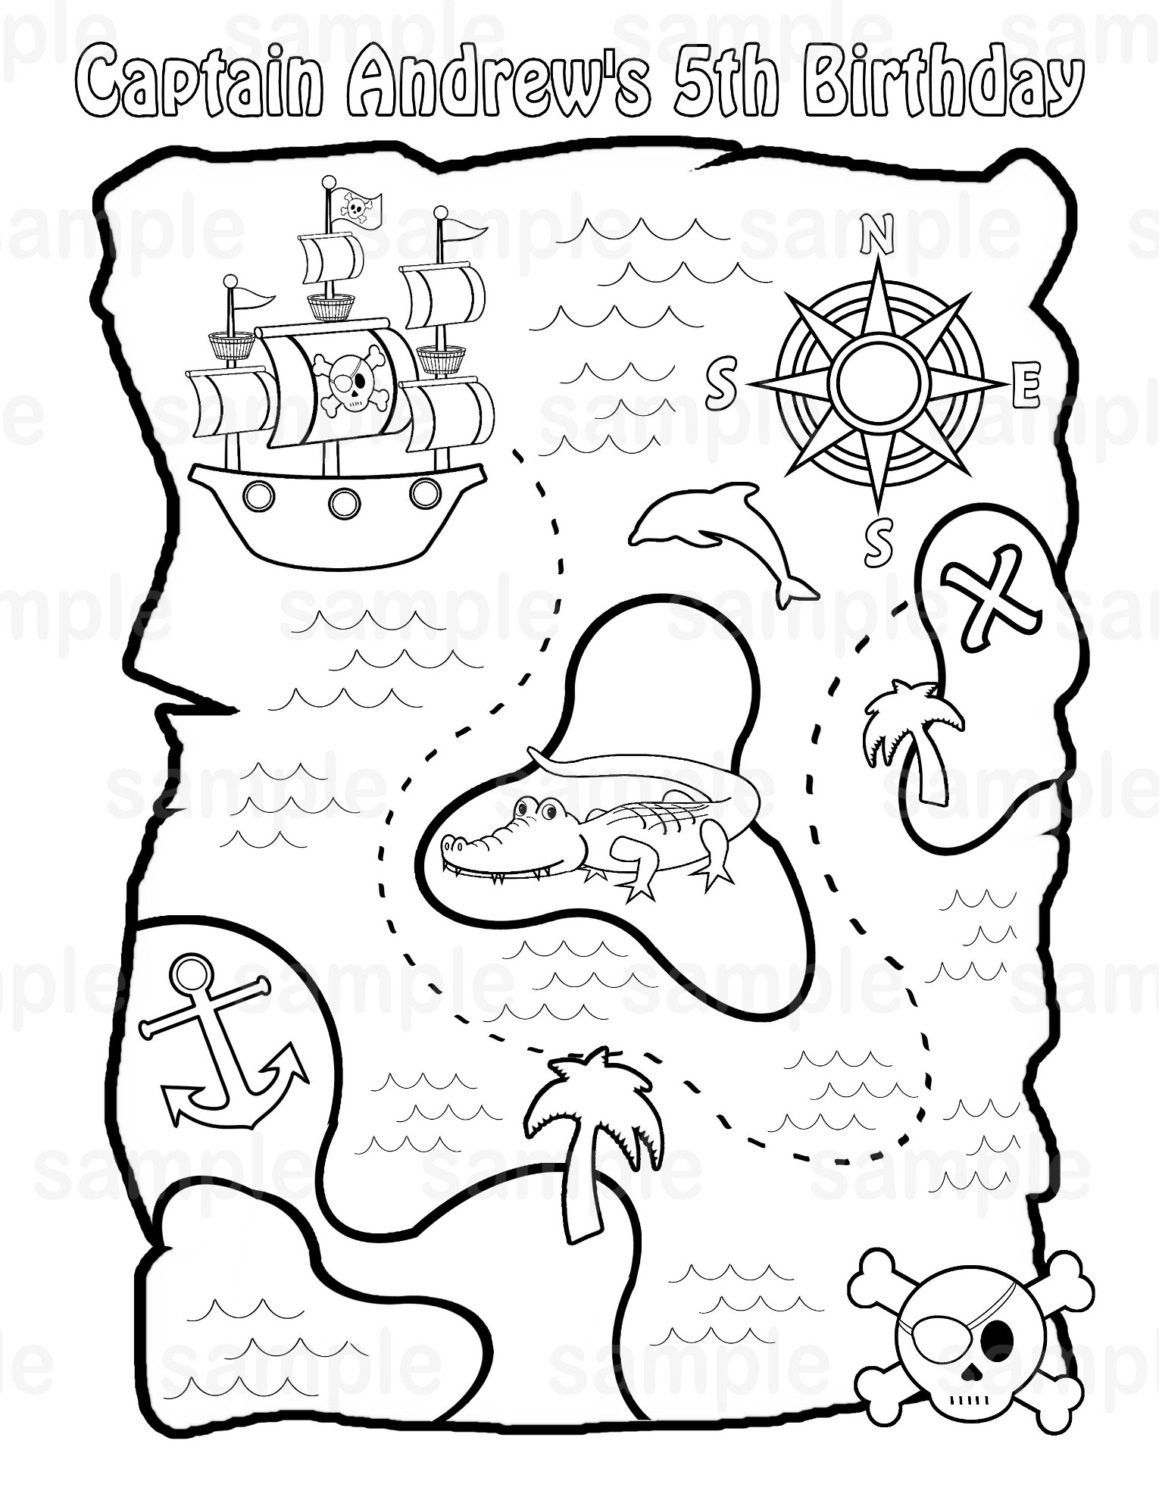 Printable pirate treasure map for kids projecte pirates for Pirate coloring pages for preschool